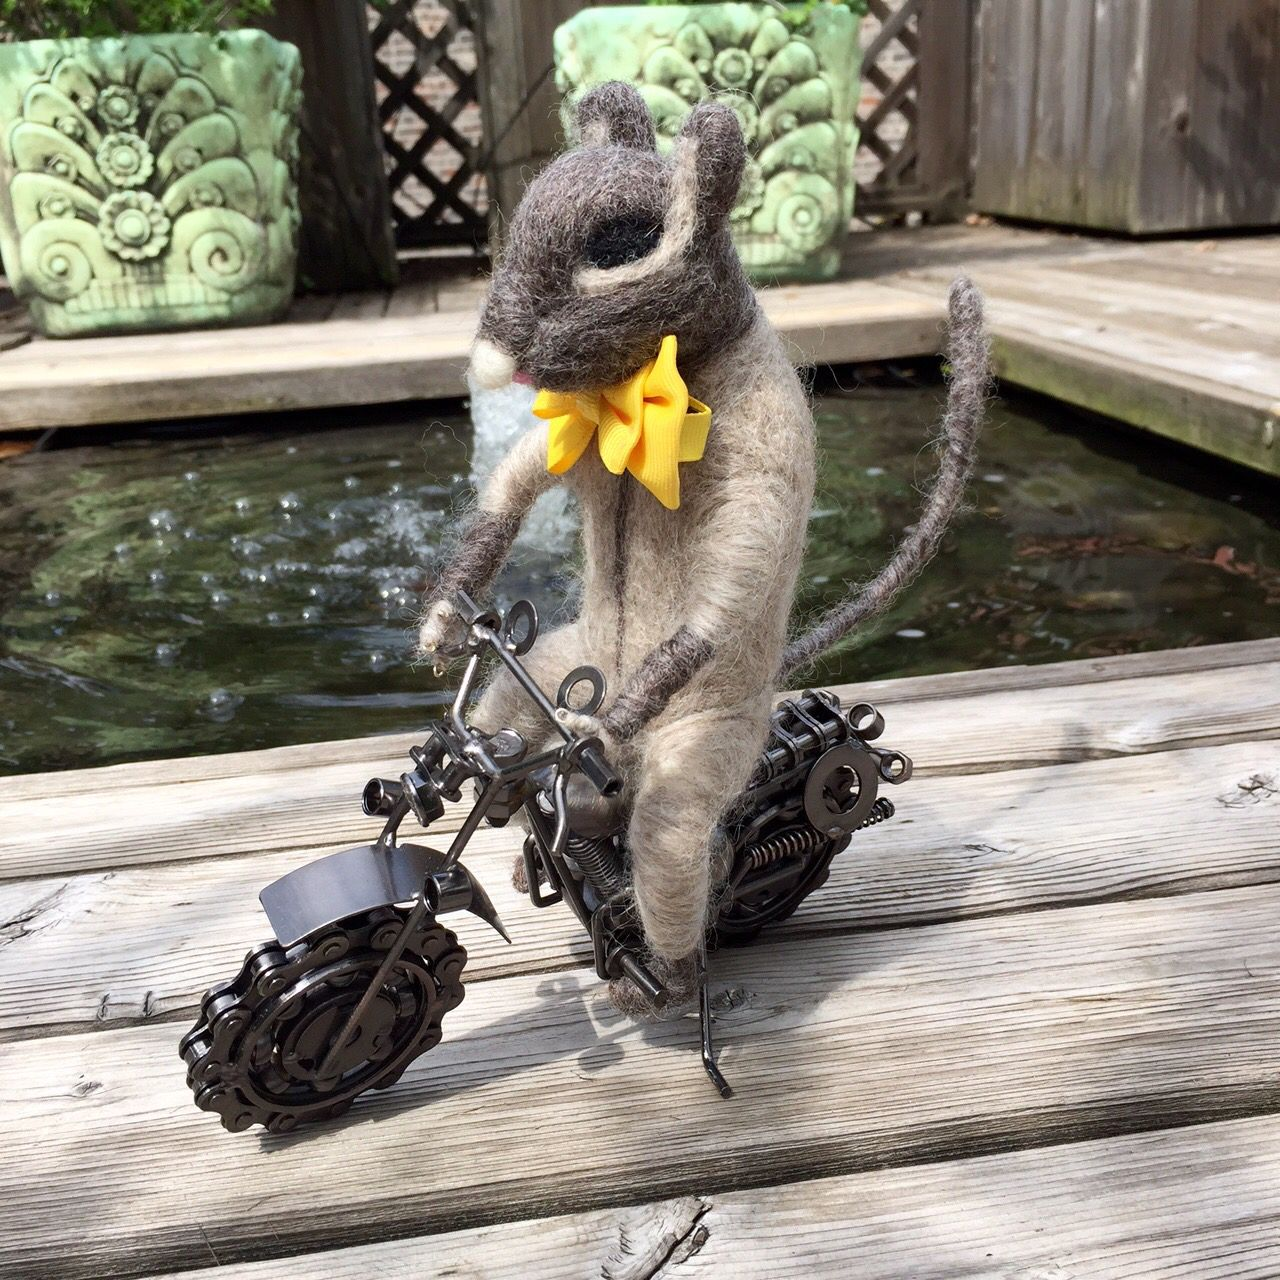 Felted squirrel on motorcycle inquisitive creatures pinterest